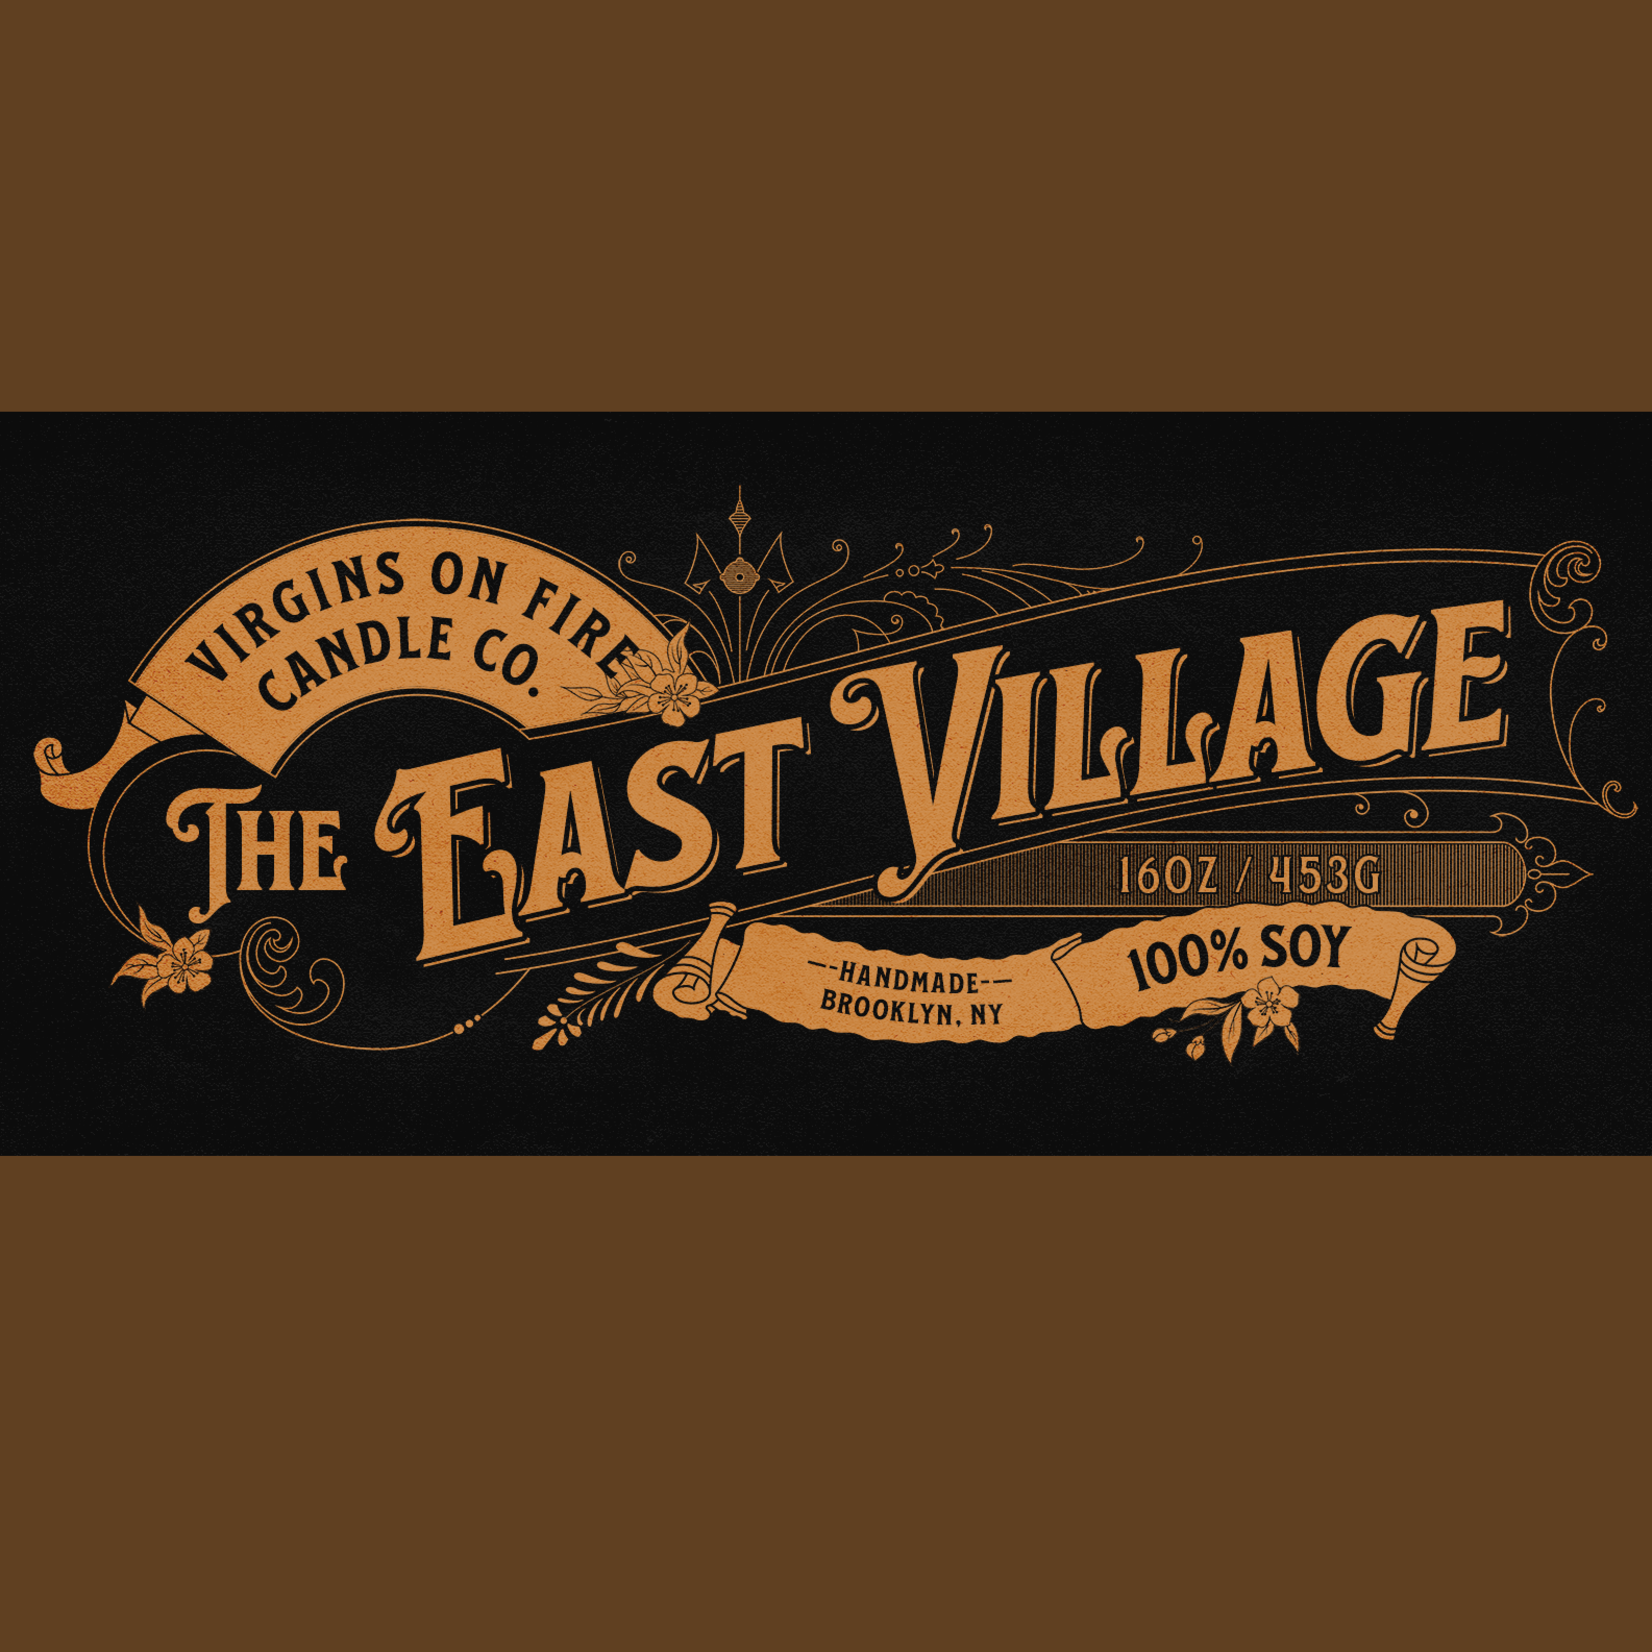 The East Village Candle